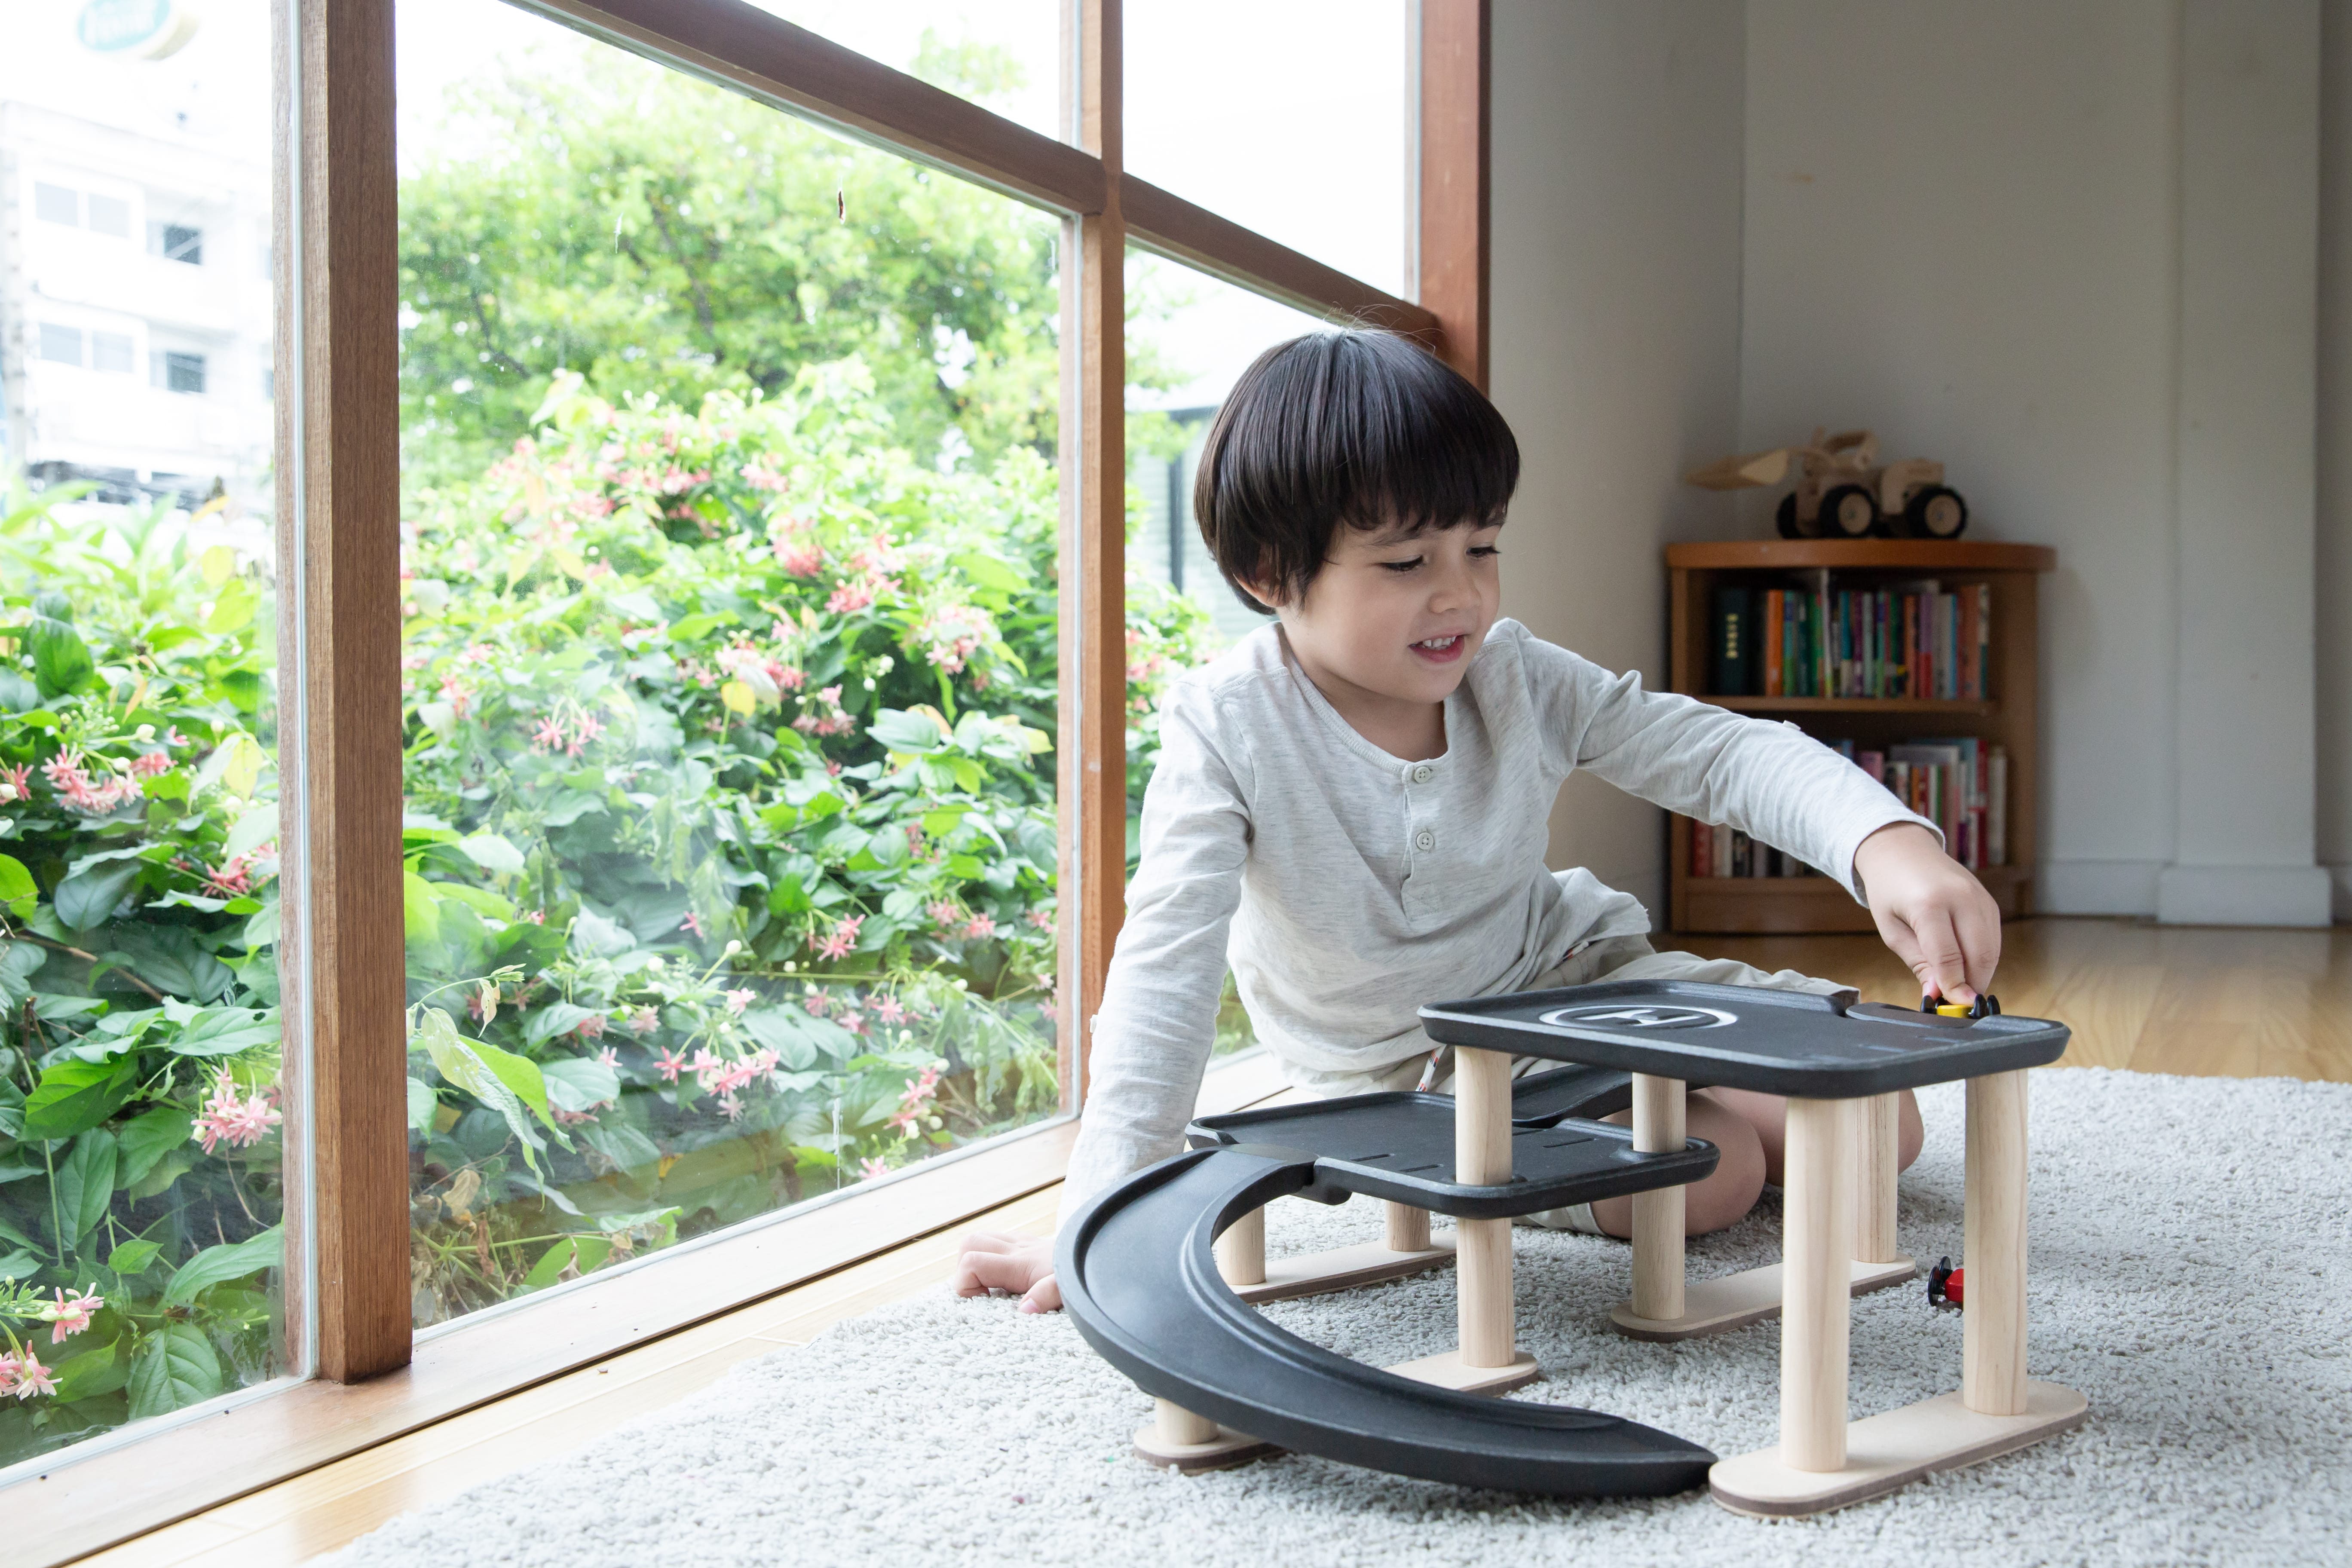 6270_PlanToys_RACE_N_PLAY_PARKING_GARAGE_Pretend_Play_Imagination_Coordination_Social_Language_and_Communications_Fine_Motor_3yrs_Wooden_toys_Education_toys_Safety_Toys_Non-toxic_2.jpg